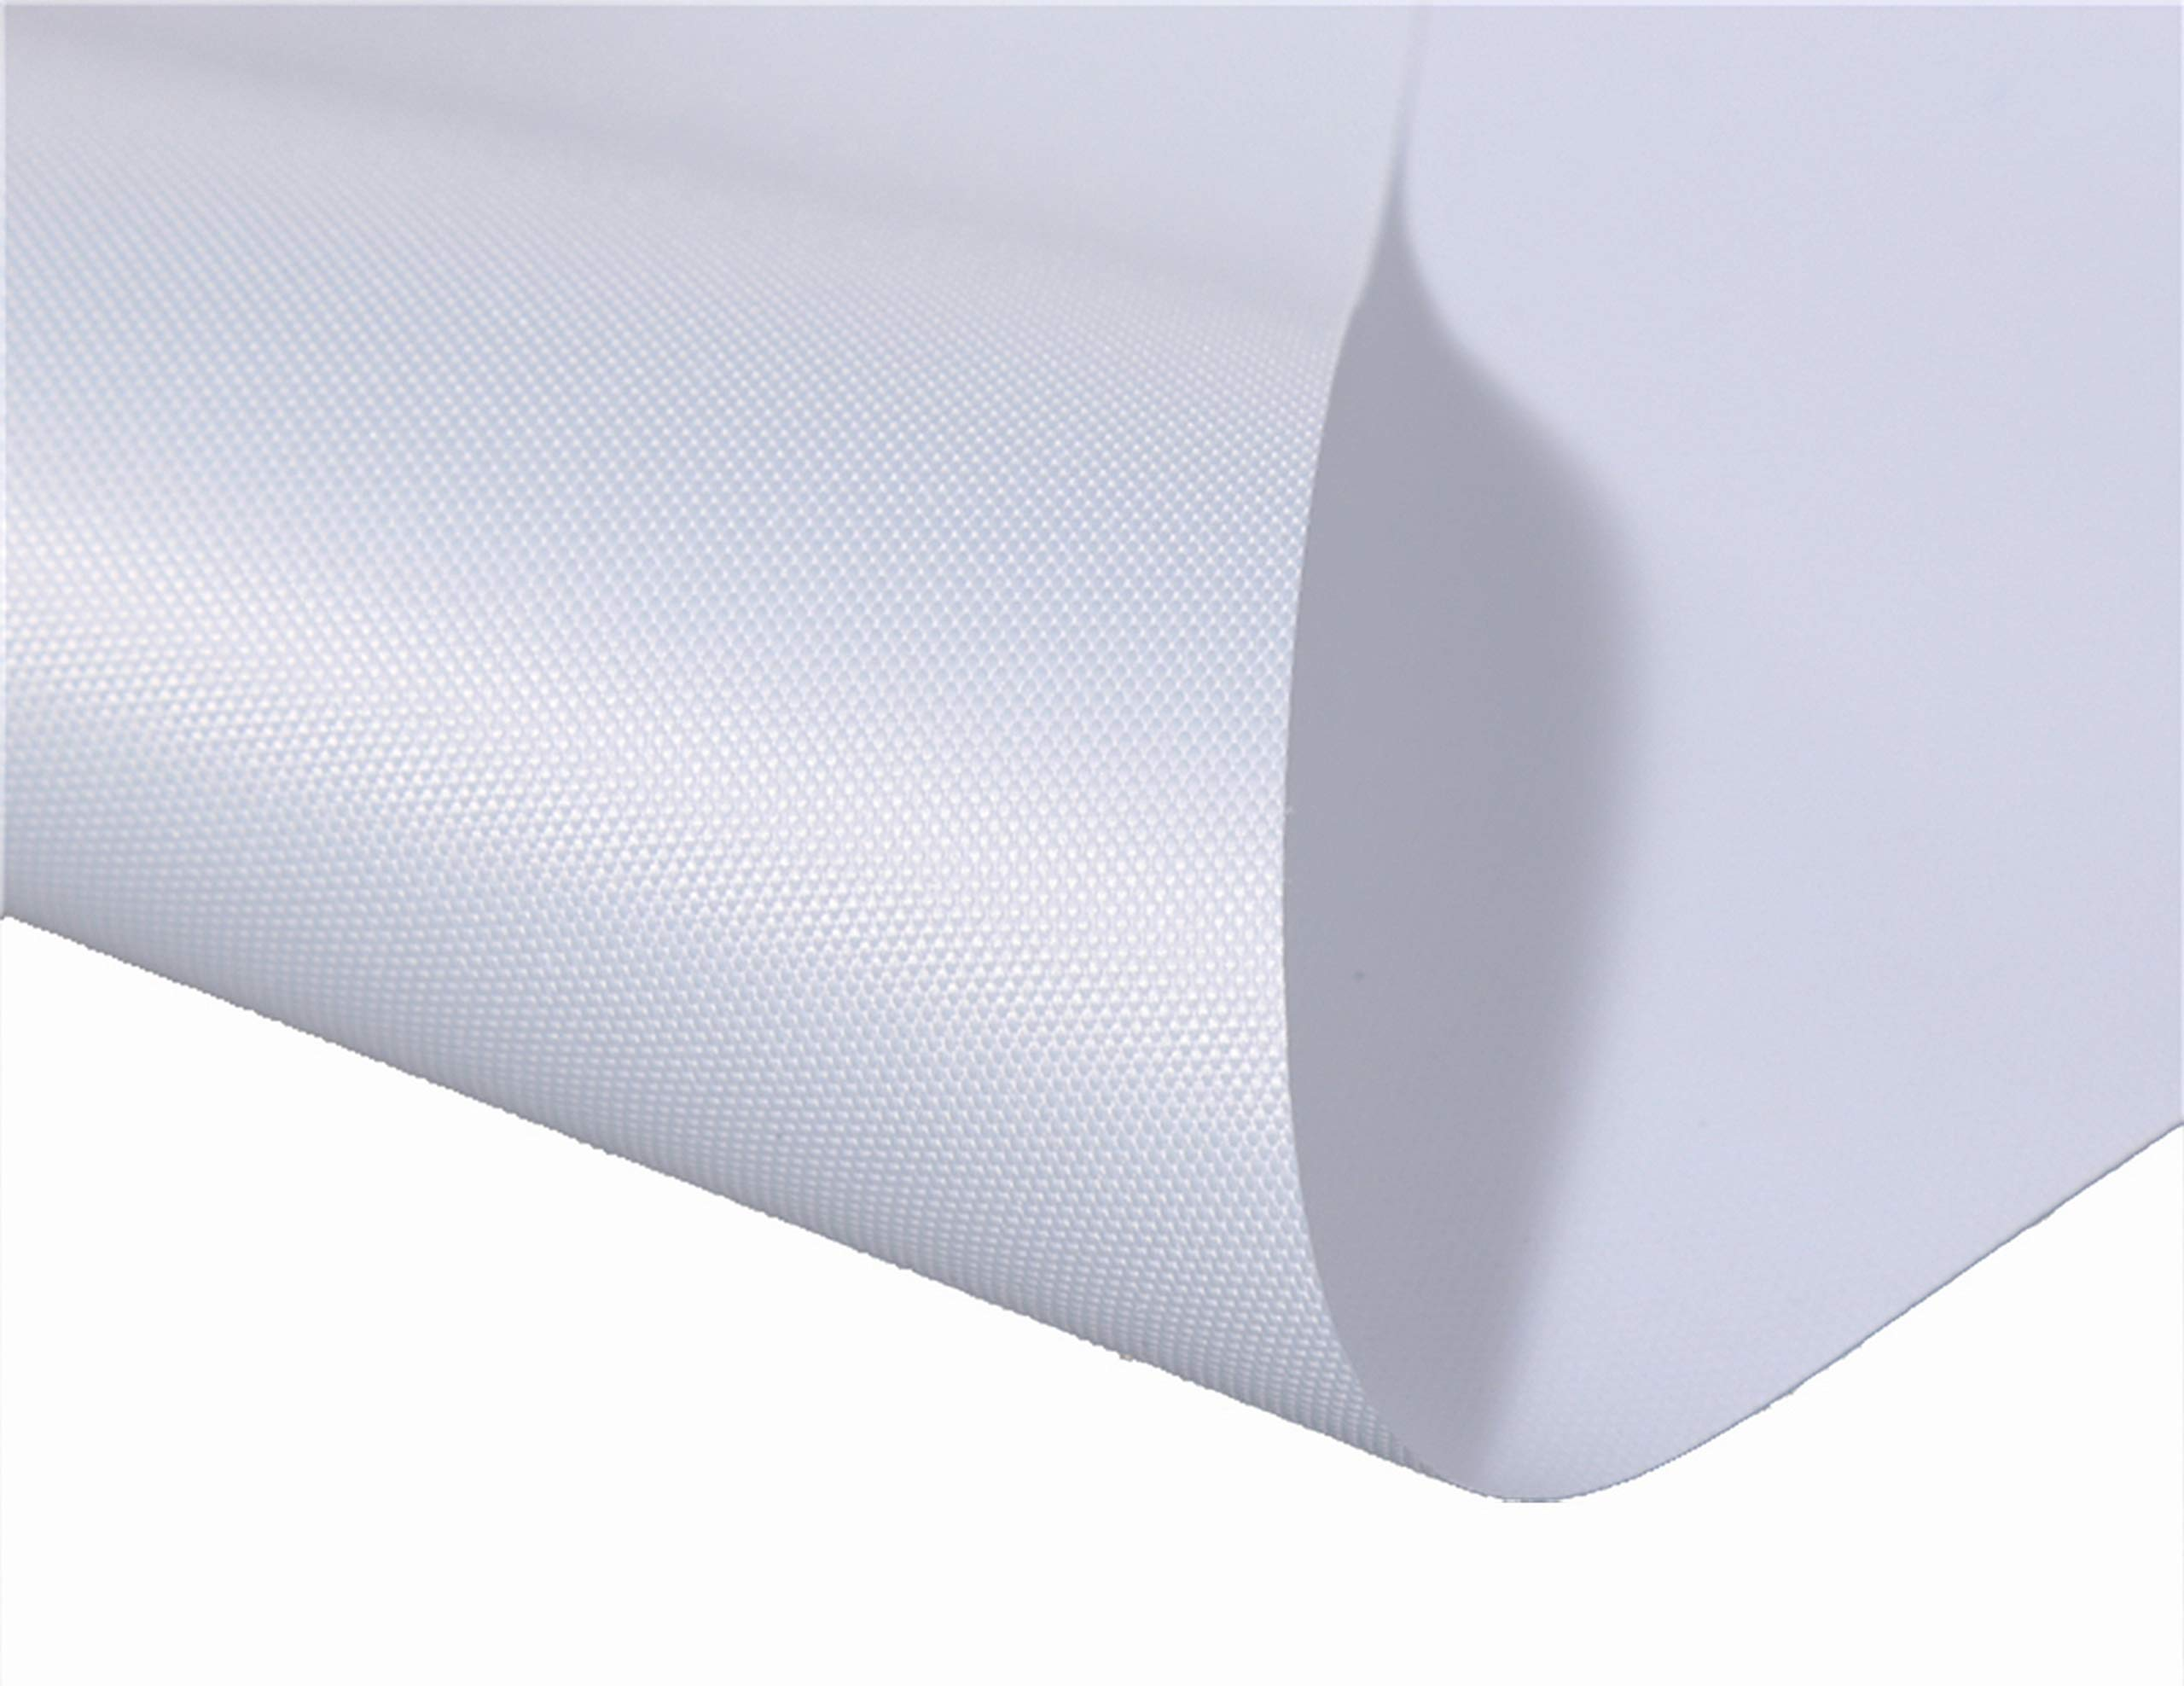 Professional Matte Canvas Roll 24''x100' 2 Rolls For Epson Canon HP inkjet printer,Surface Polyester Thick Canvas by P&L ART. (Image #2)